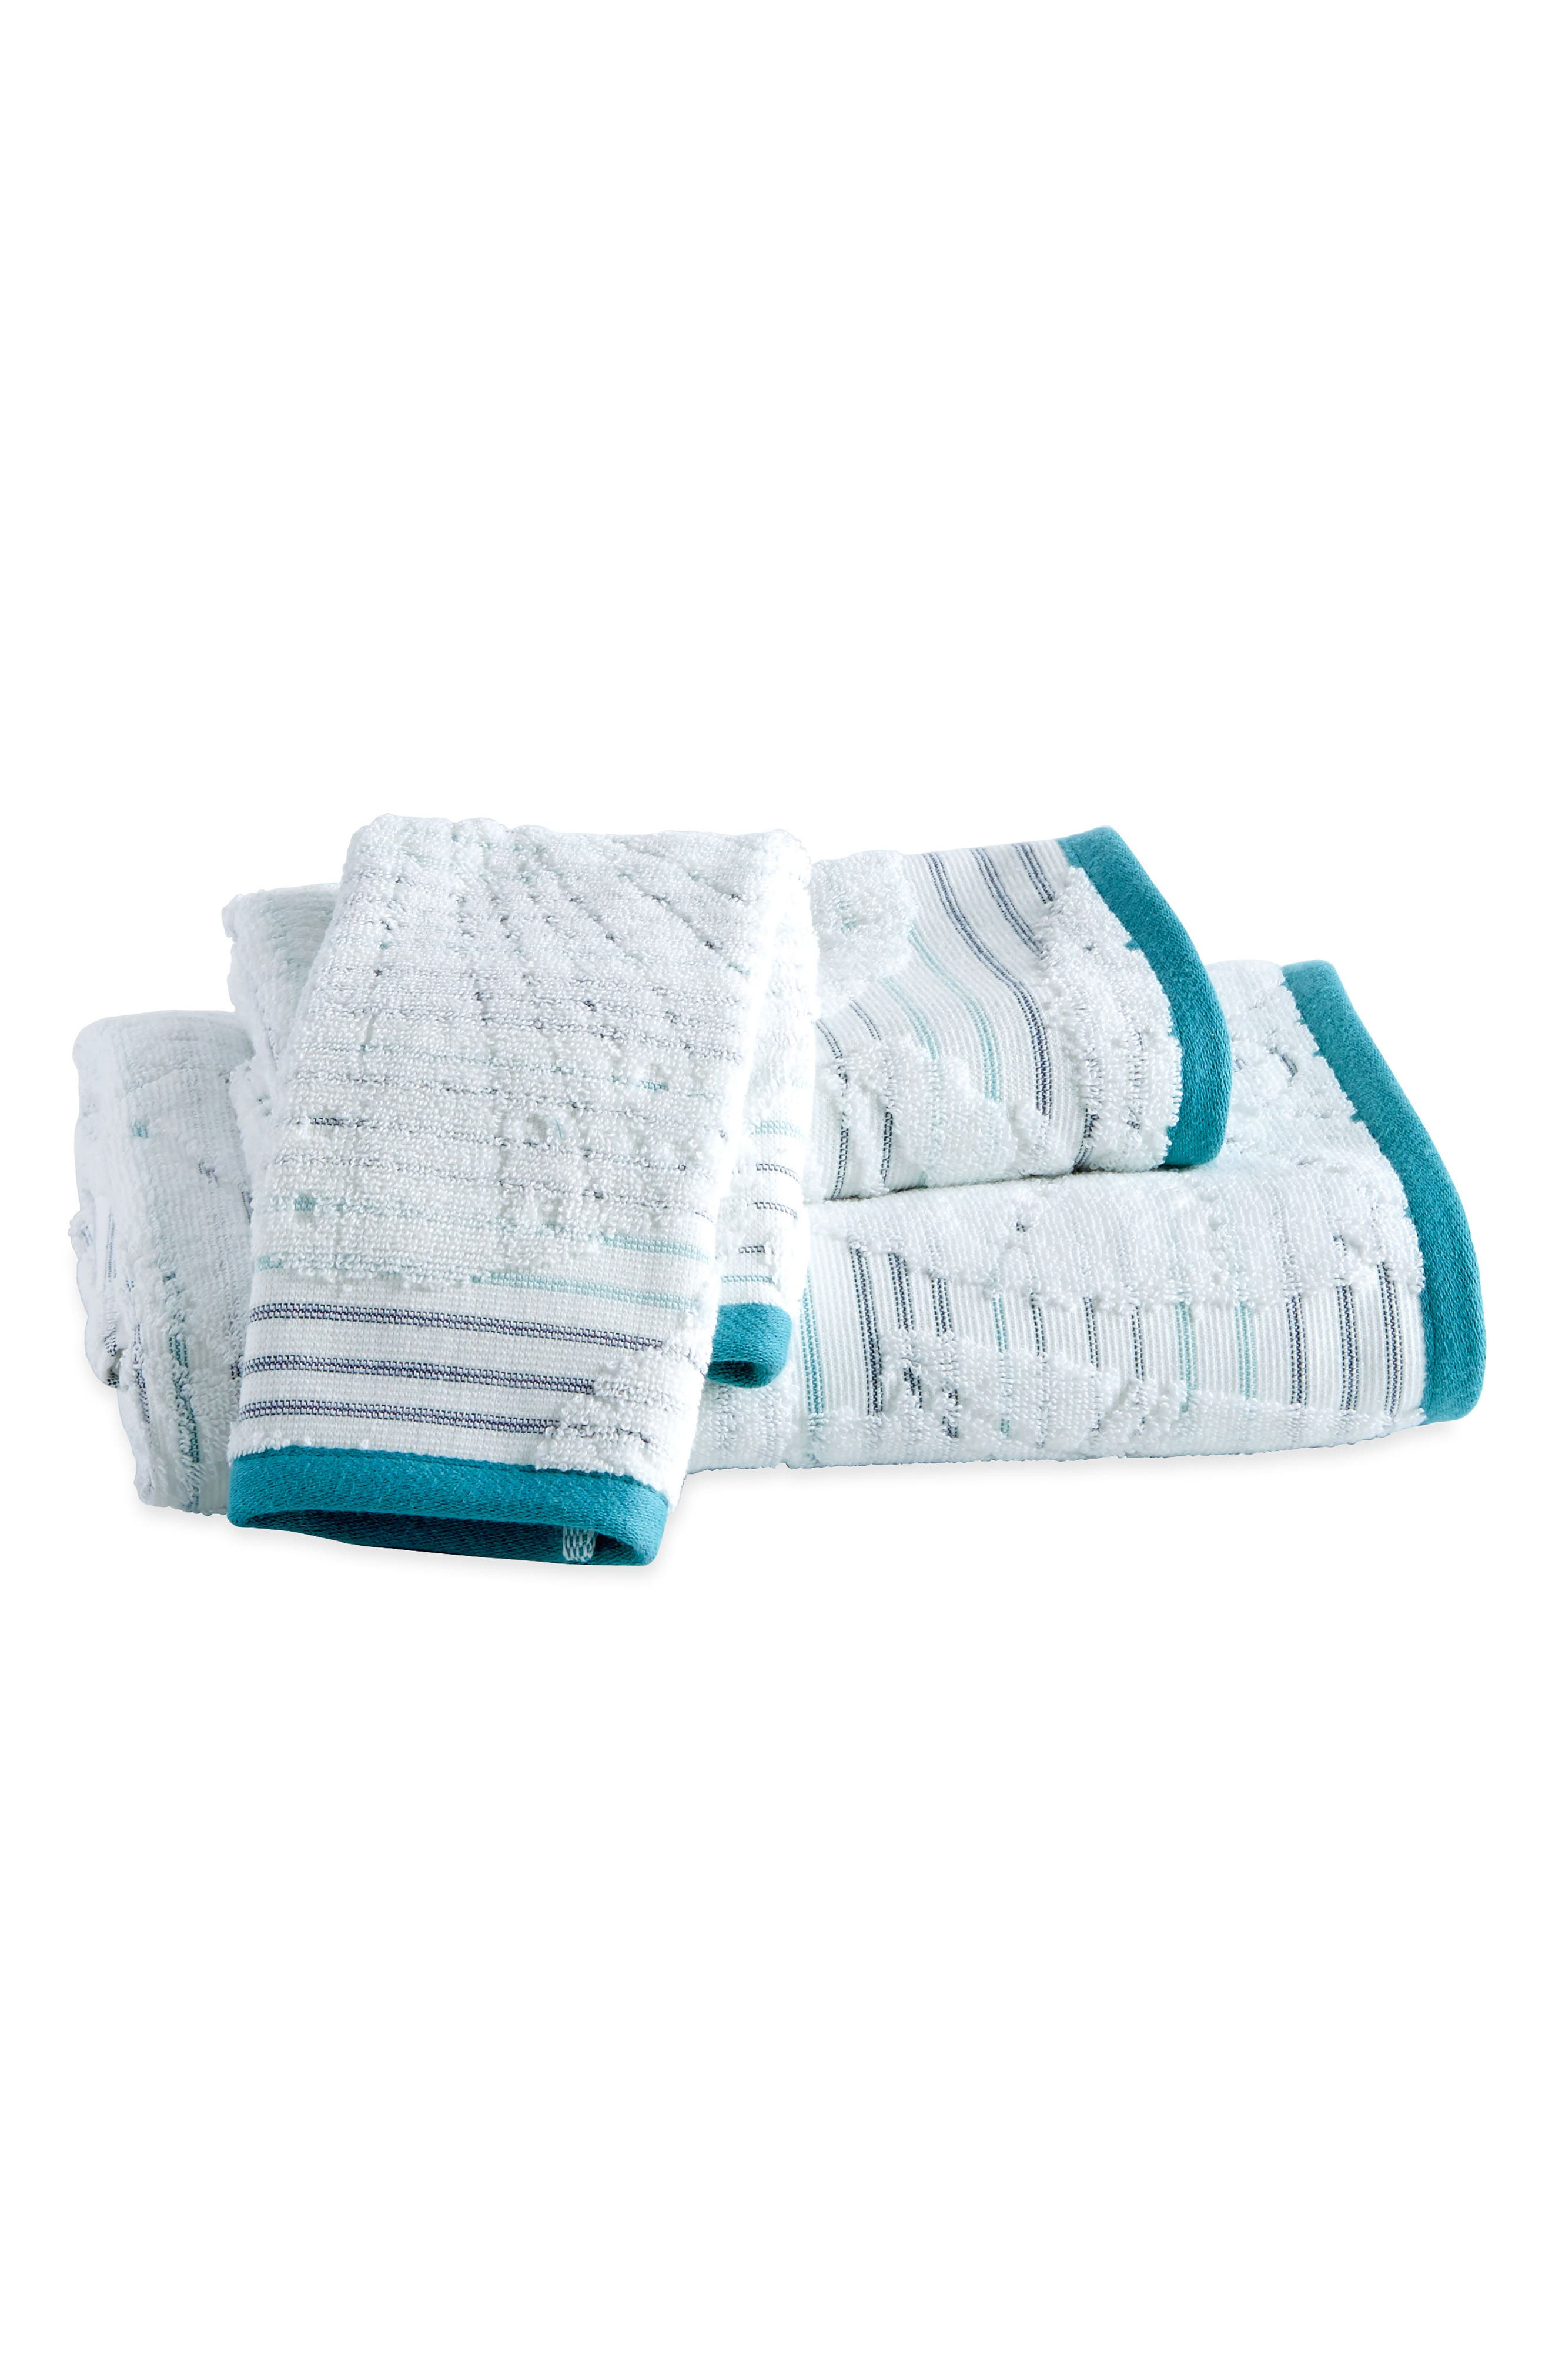 Destinations Mykonos Bath Towel, Hand Towel and Washcloth Set